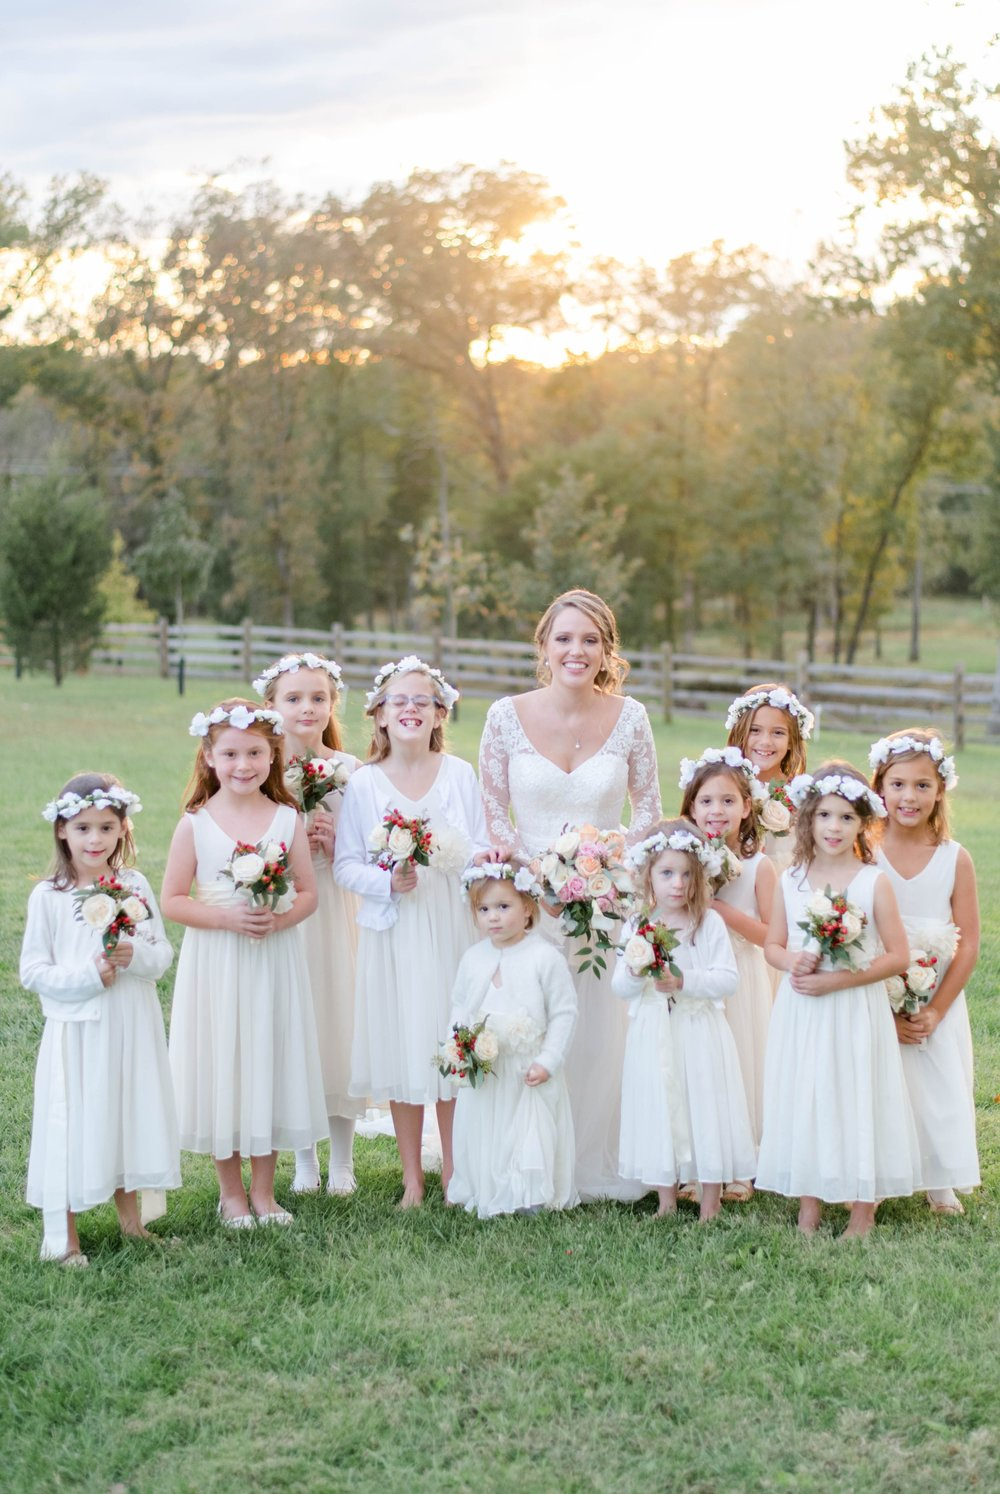 GrantElizabeth_wineryatbullrun_DCwedding_Virginiaweddingphotographer 35.jpg